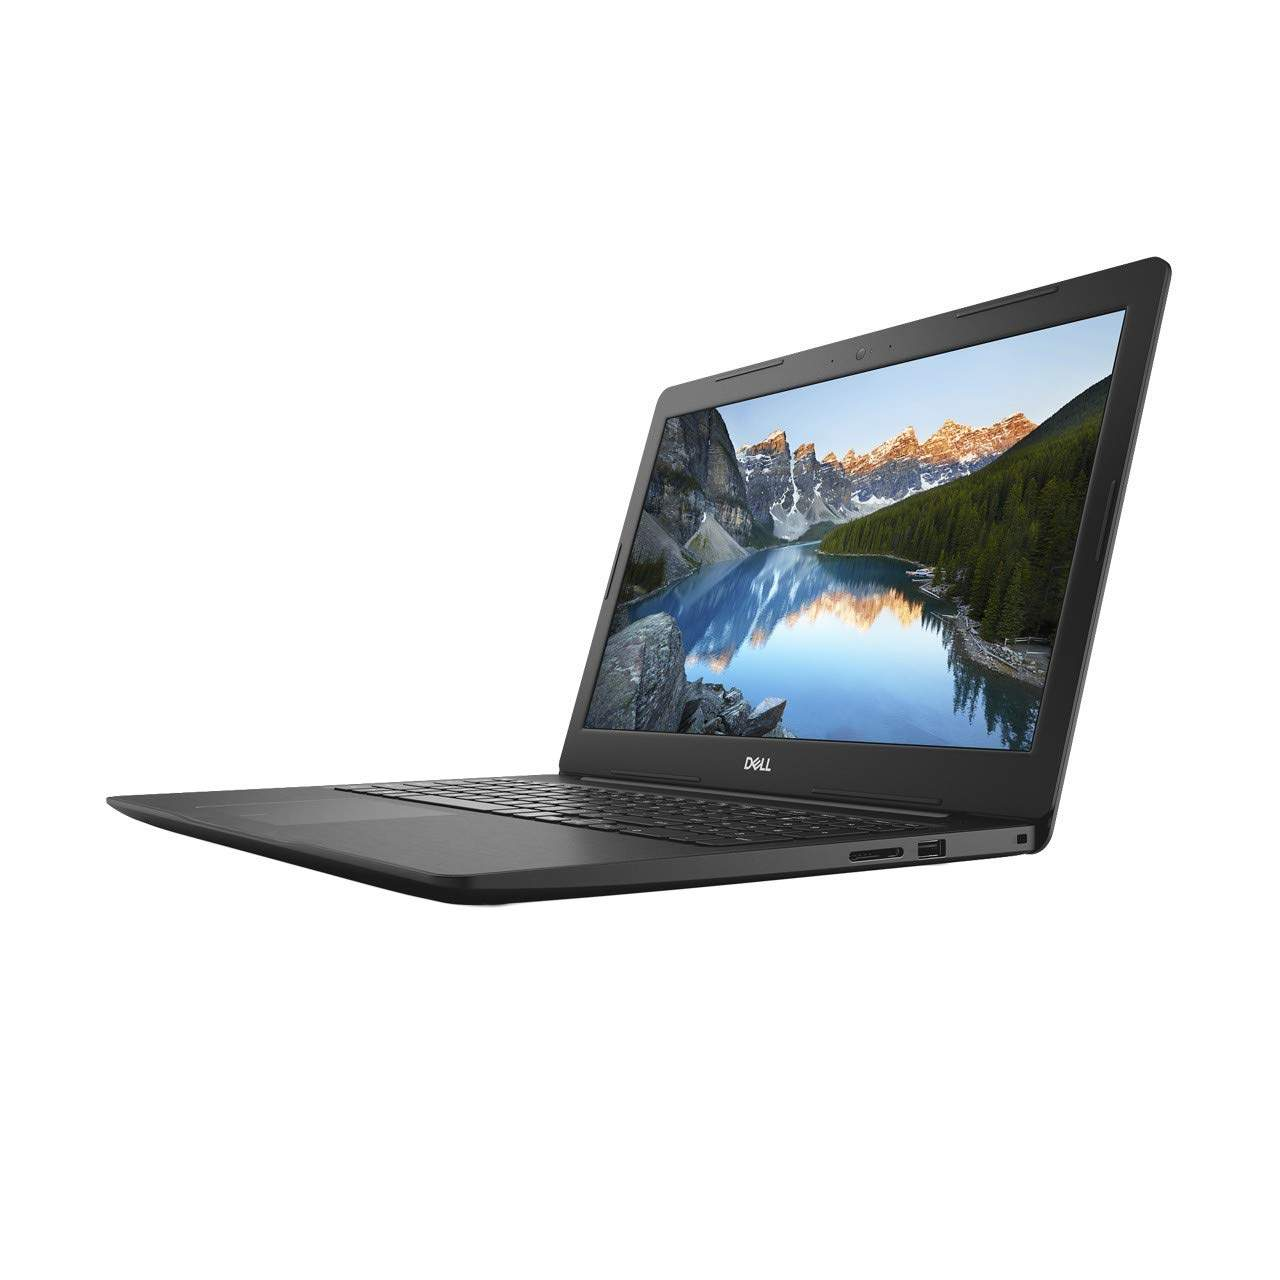 Dell Inspiron 5570 Intel Core I5 8th Gen 15.6-inch FHD Laptop (4GB+ 16GB/2TB HDD/Windows 10 Home/MS Office/2GB Graphics/ Black/2.5kg)